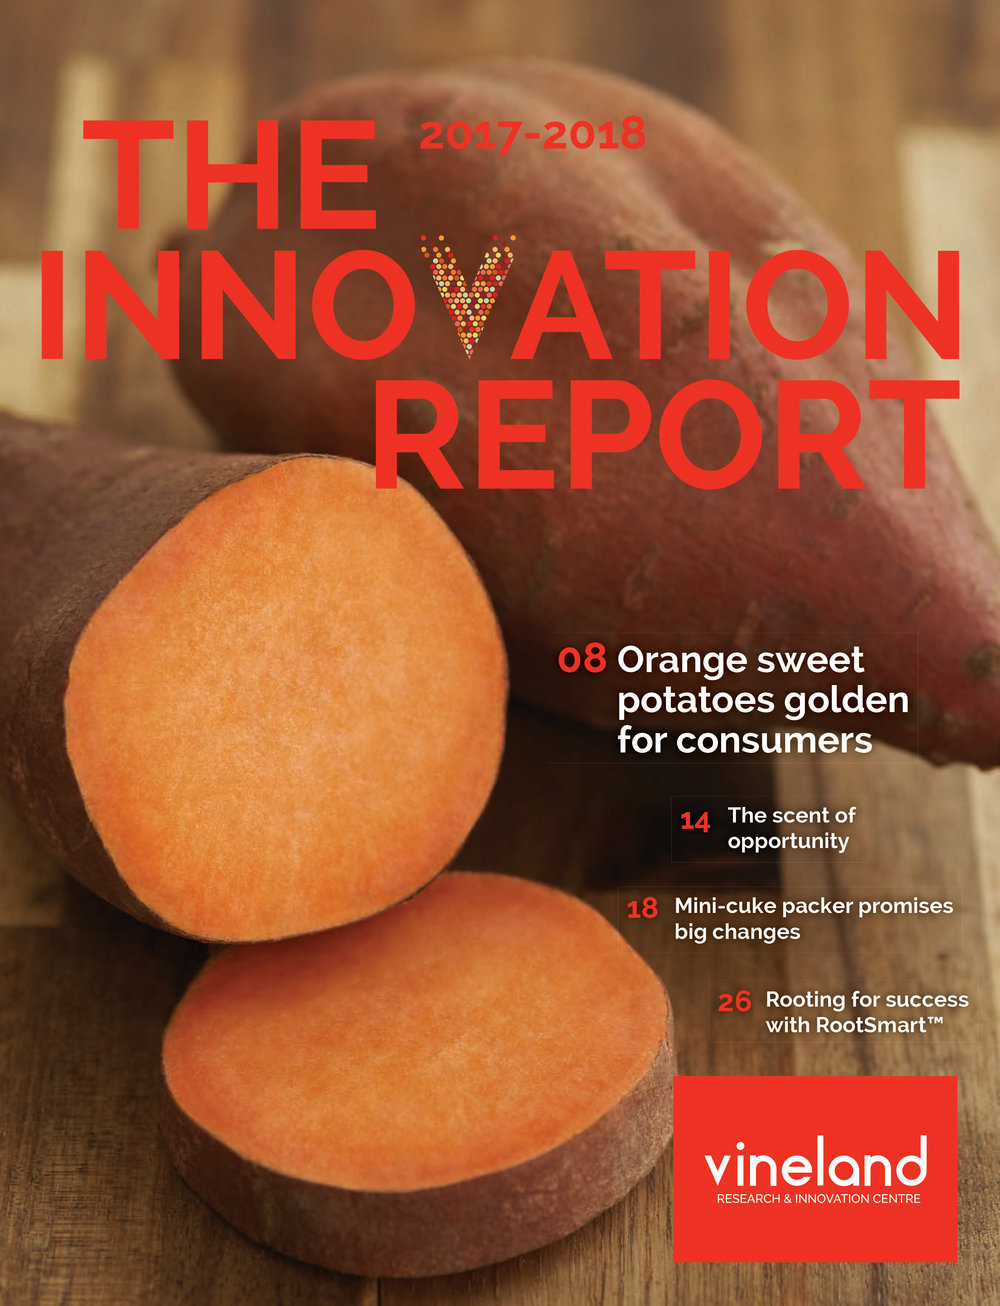 Marta-Hewson-Advertising-sweet-potatoes-Innovation-Report-Vineland-Research.jpg